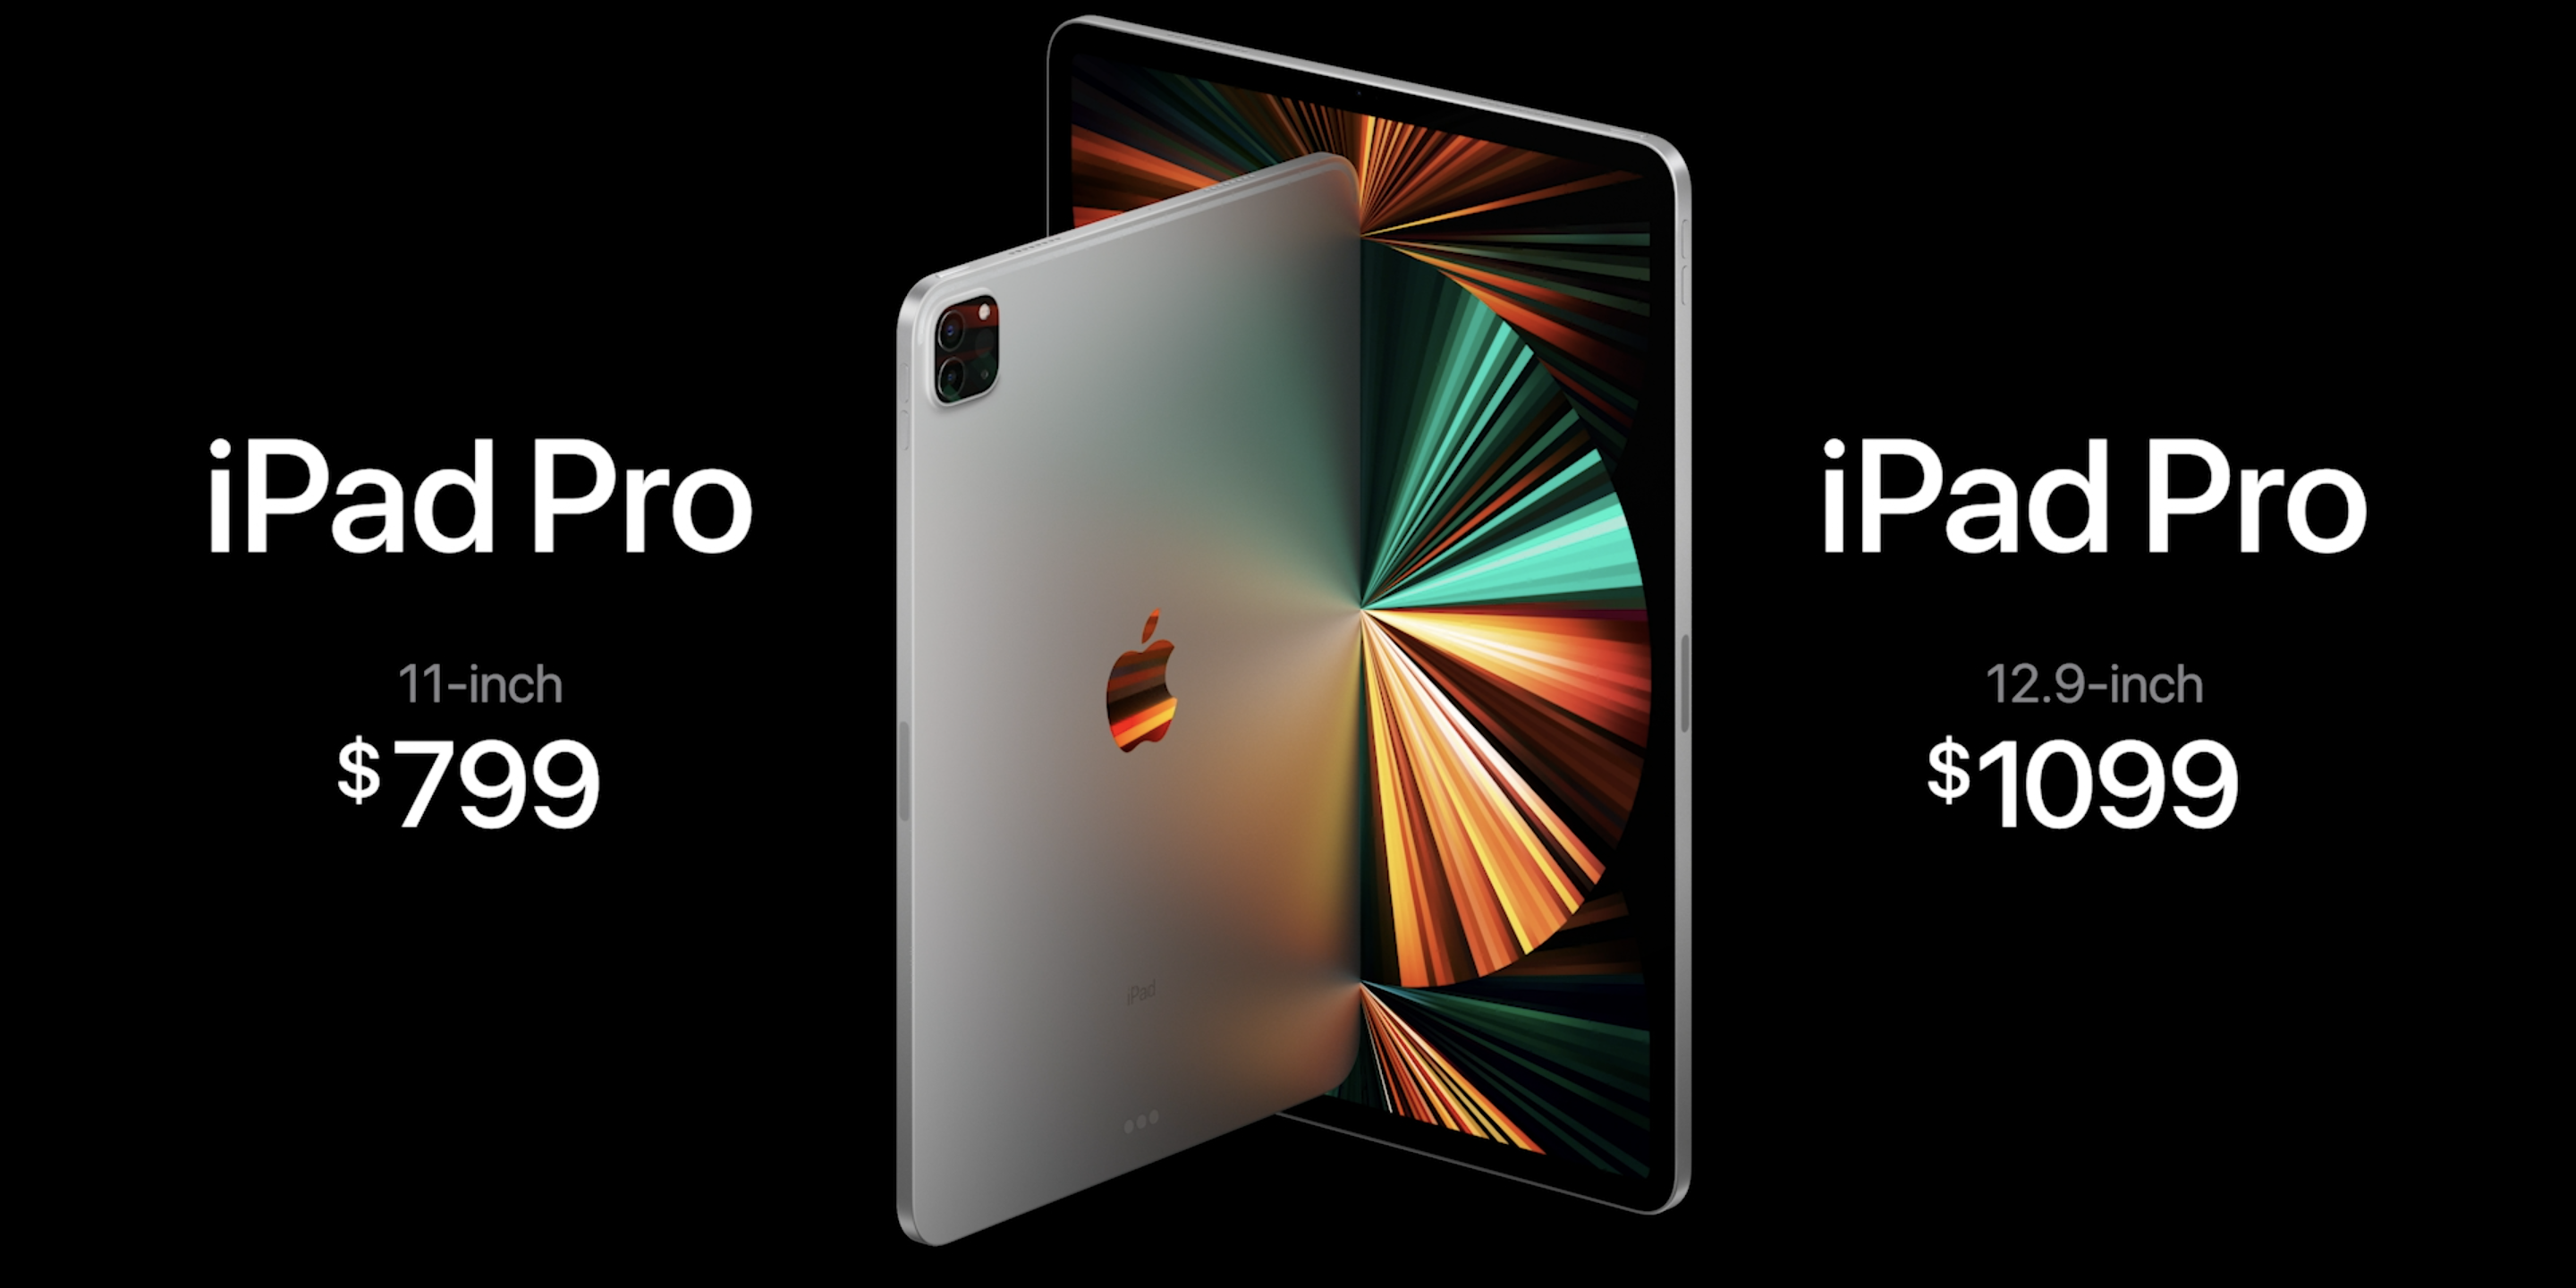 Apple's new iPad Pro improves upon last year's with a faster processor and 5G support – but the upgrade is really for power users